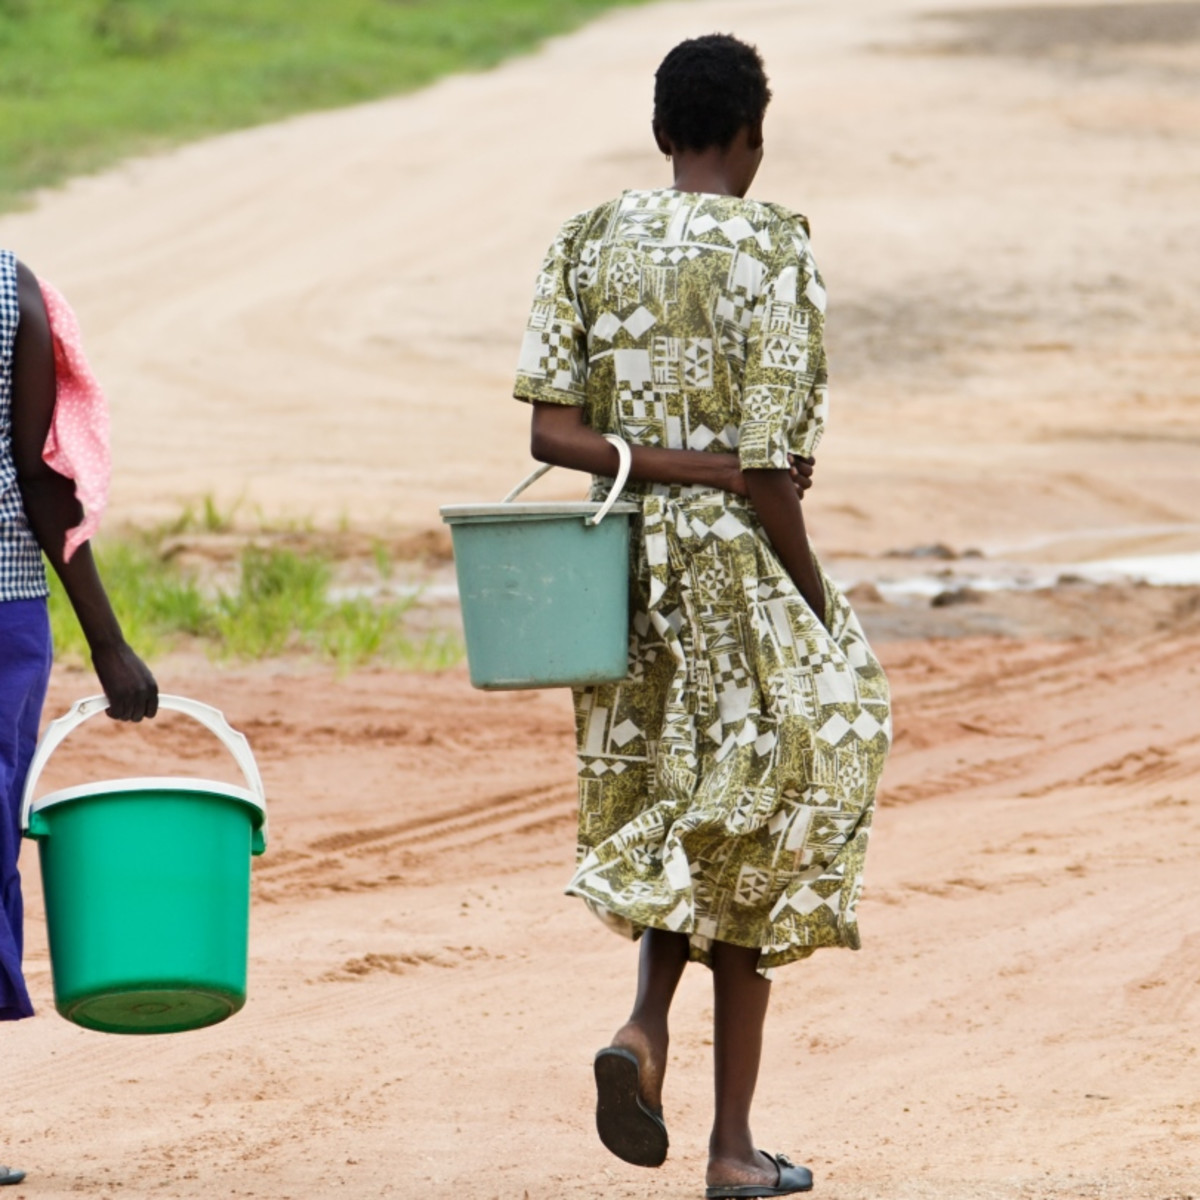 11 Facts About Water in the Developing World | DoSomething.org